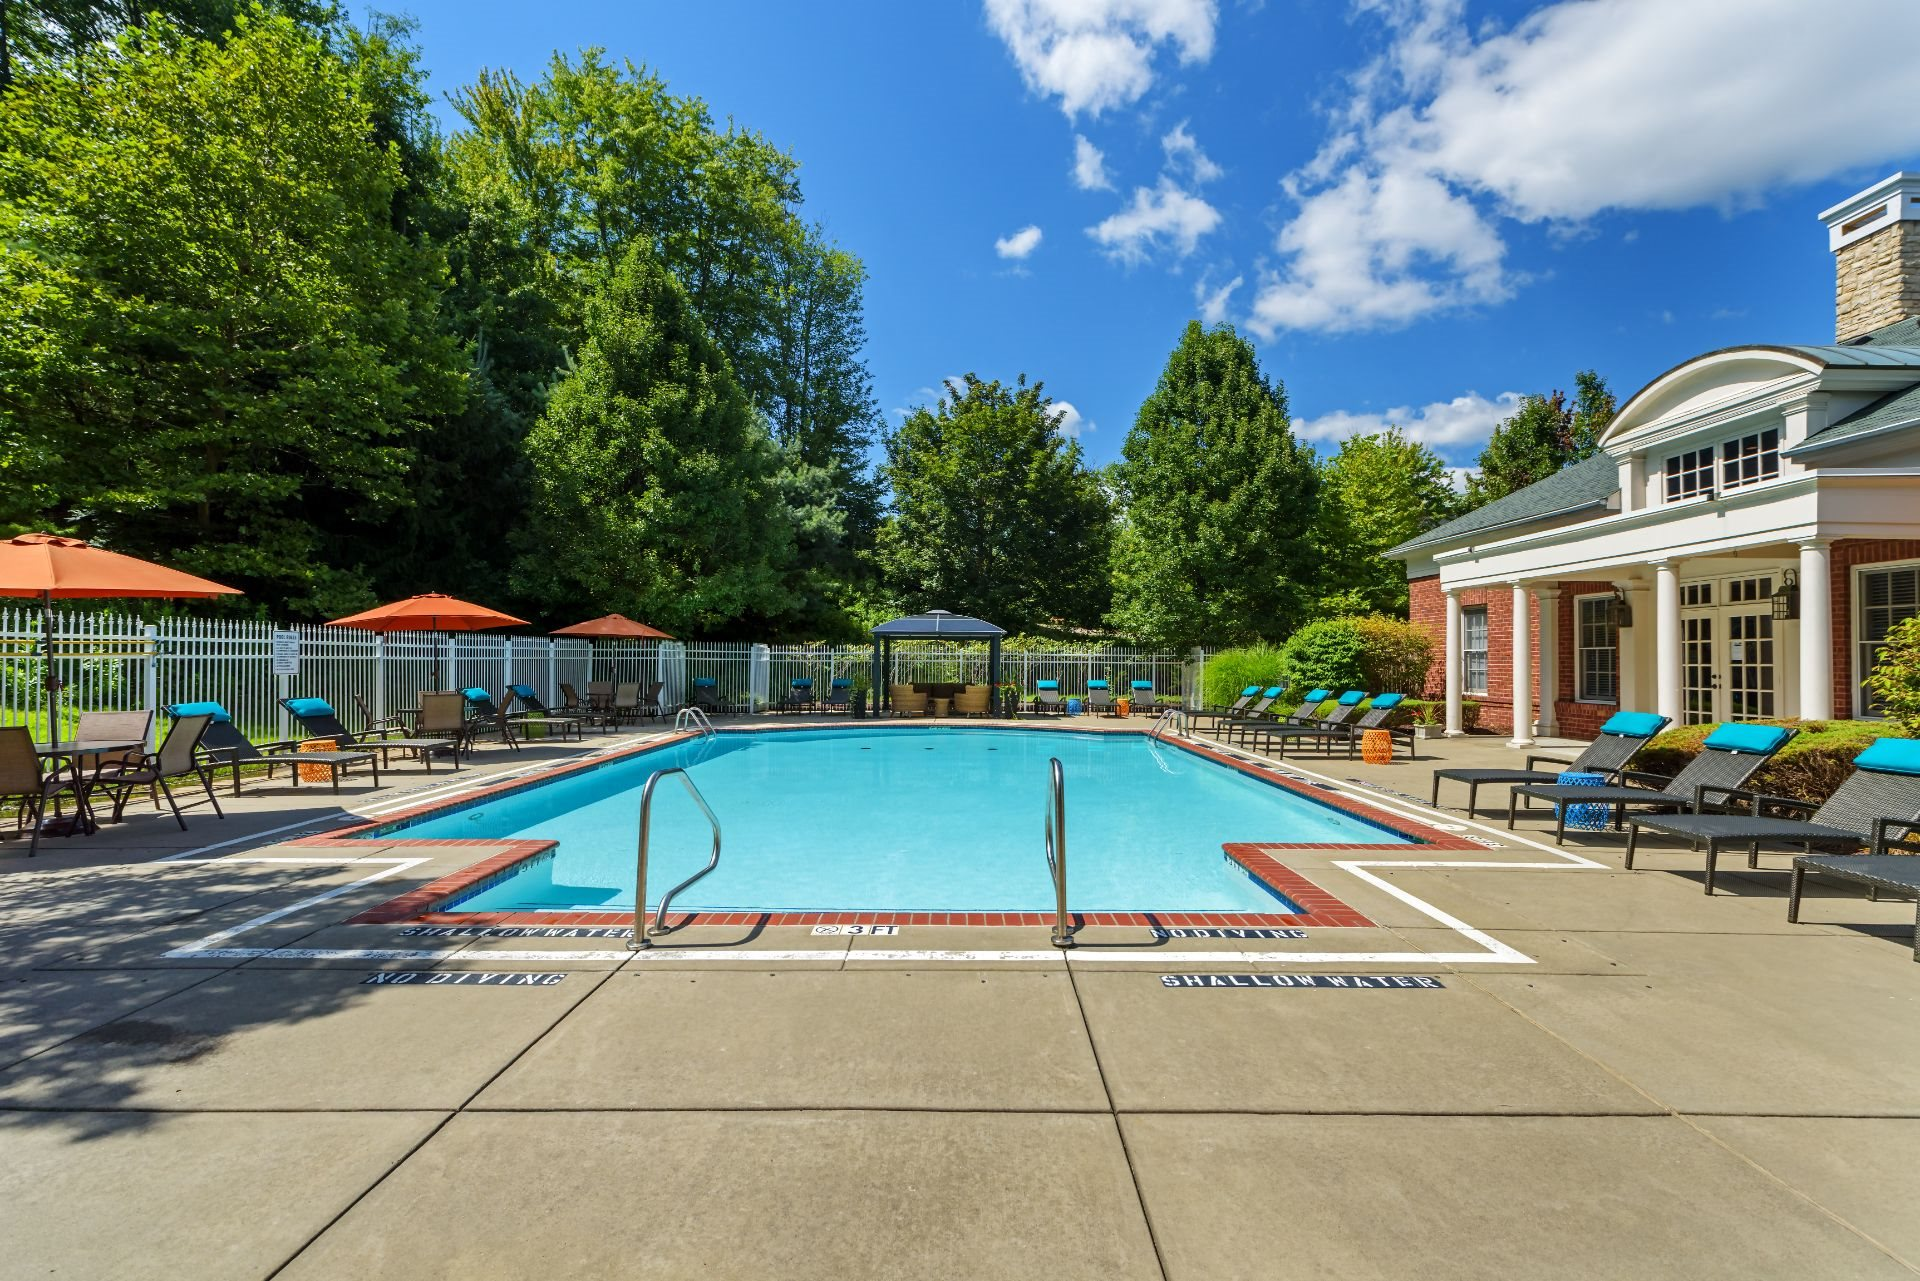 Swimming Pool at Christopher Wren Apartments